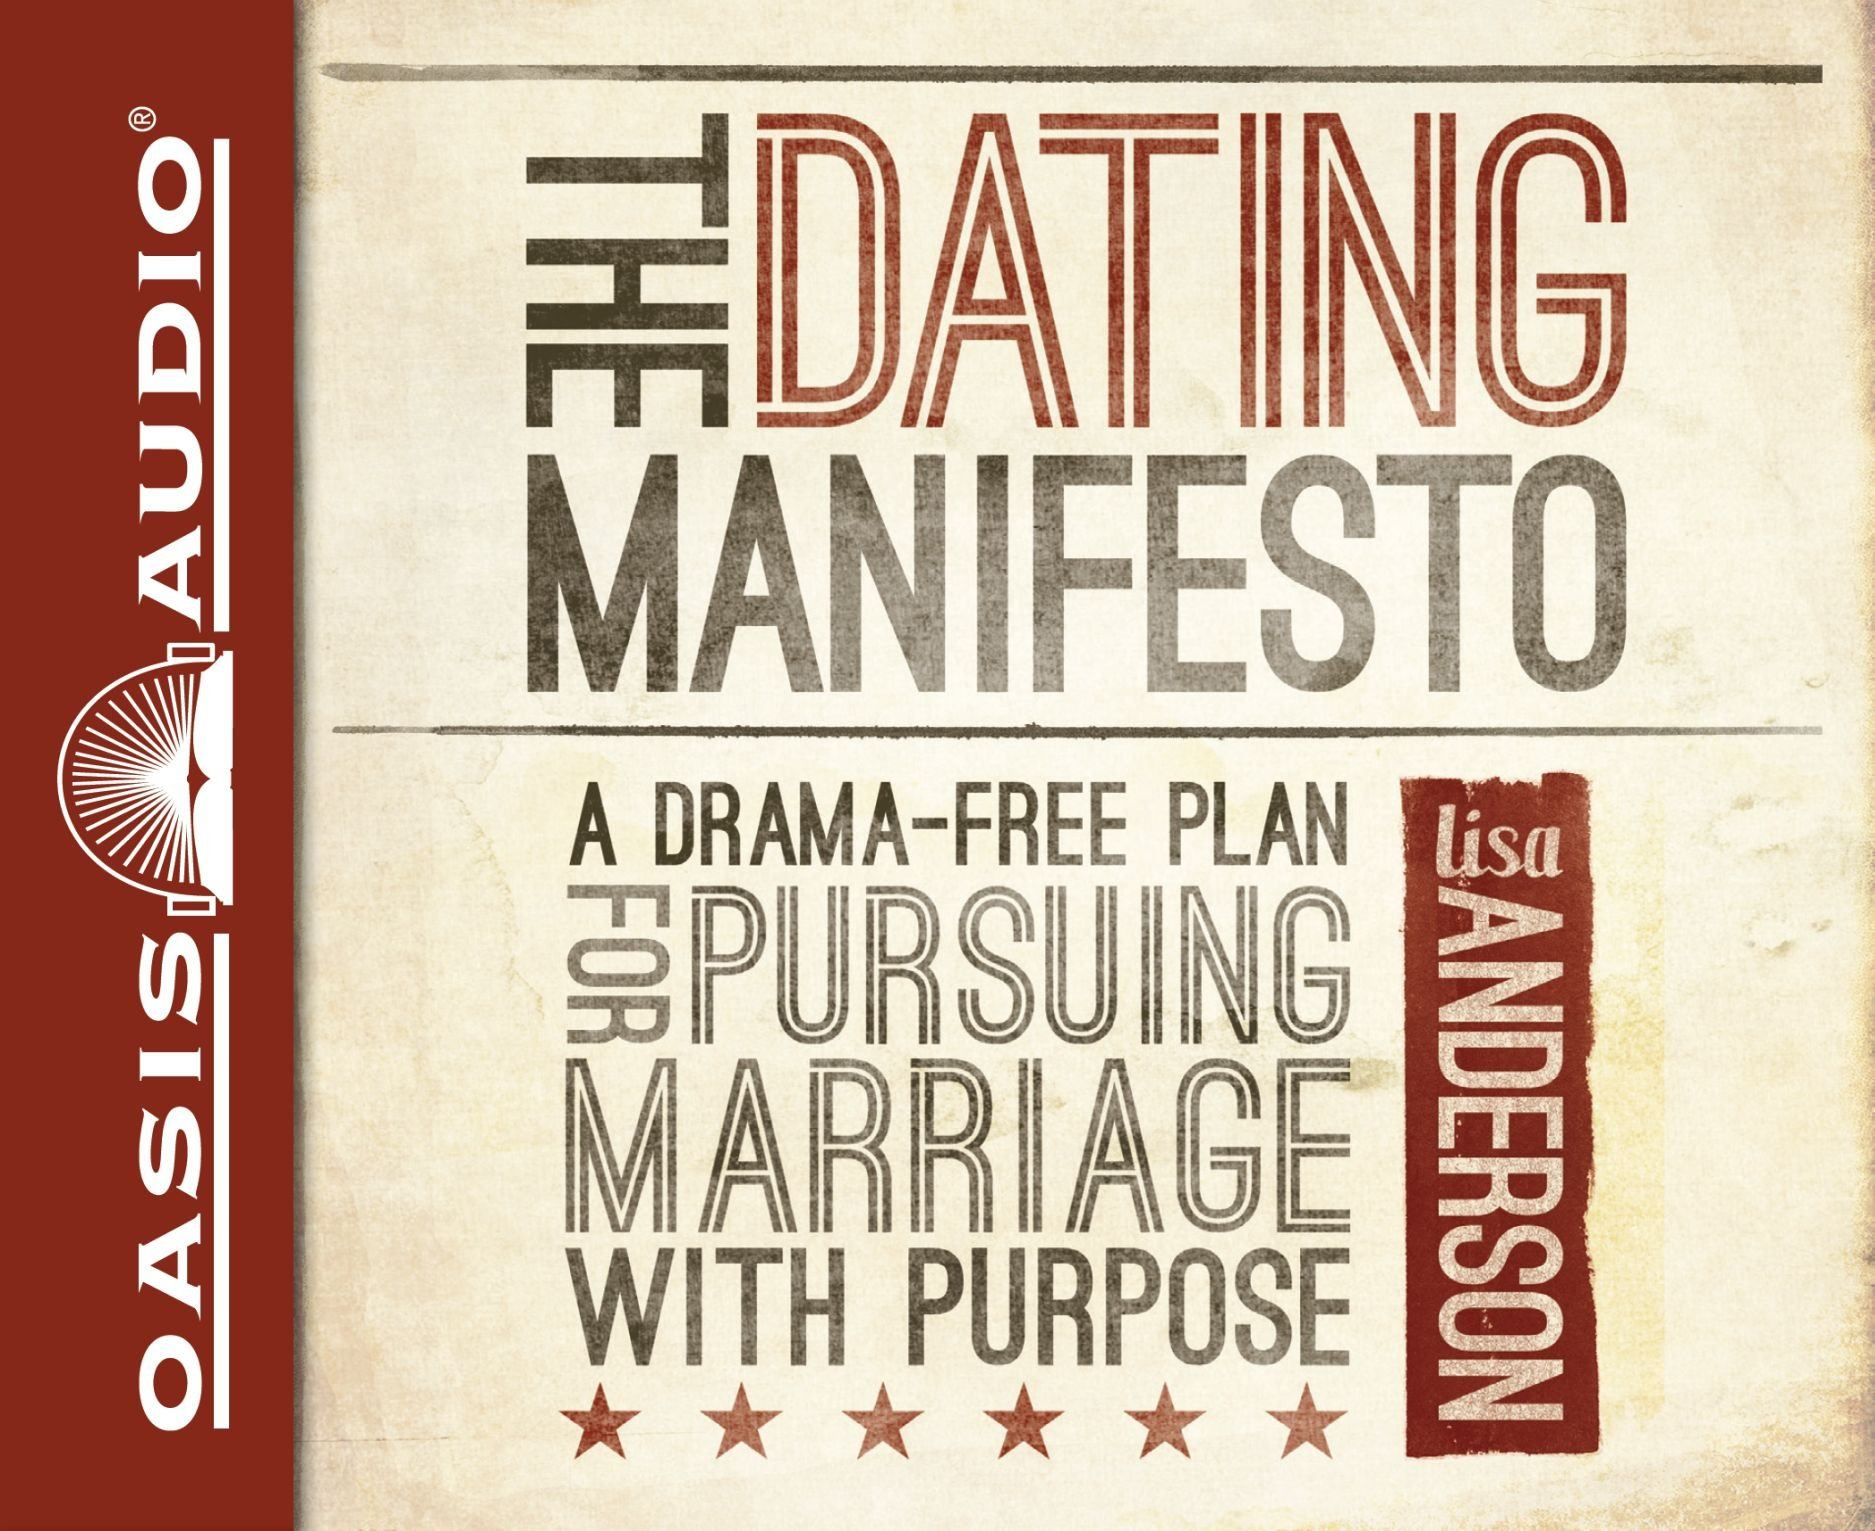 The Dating Manifesto: A Drama-Free Plan for Pursuing Marriage with